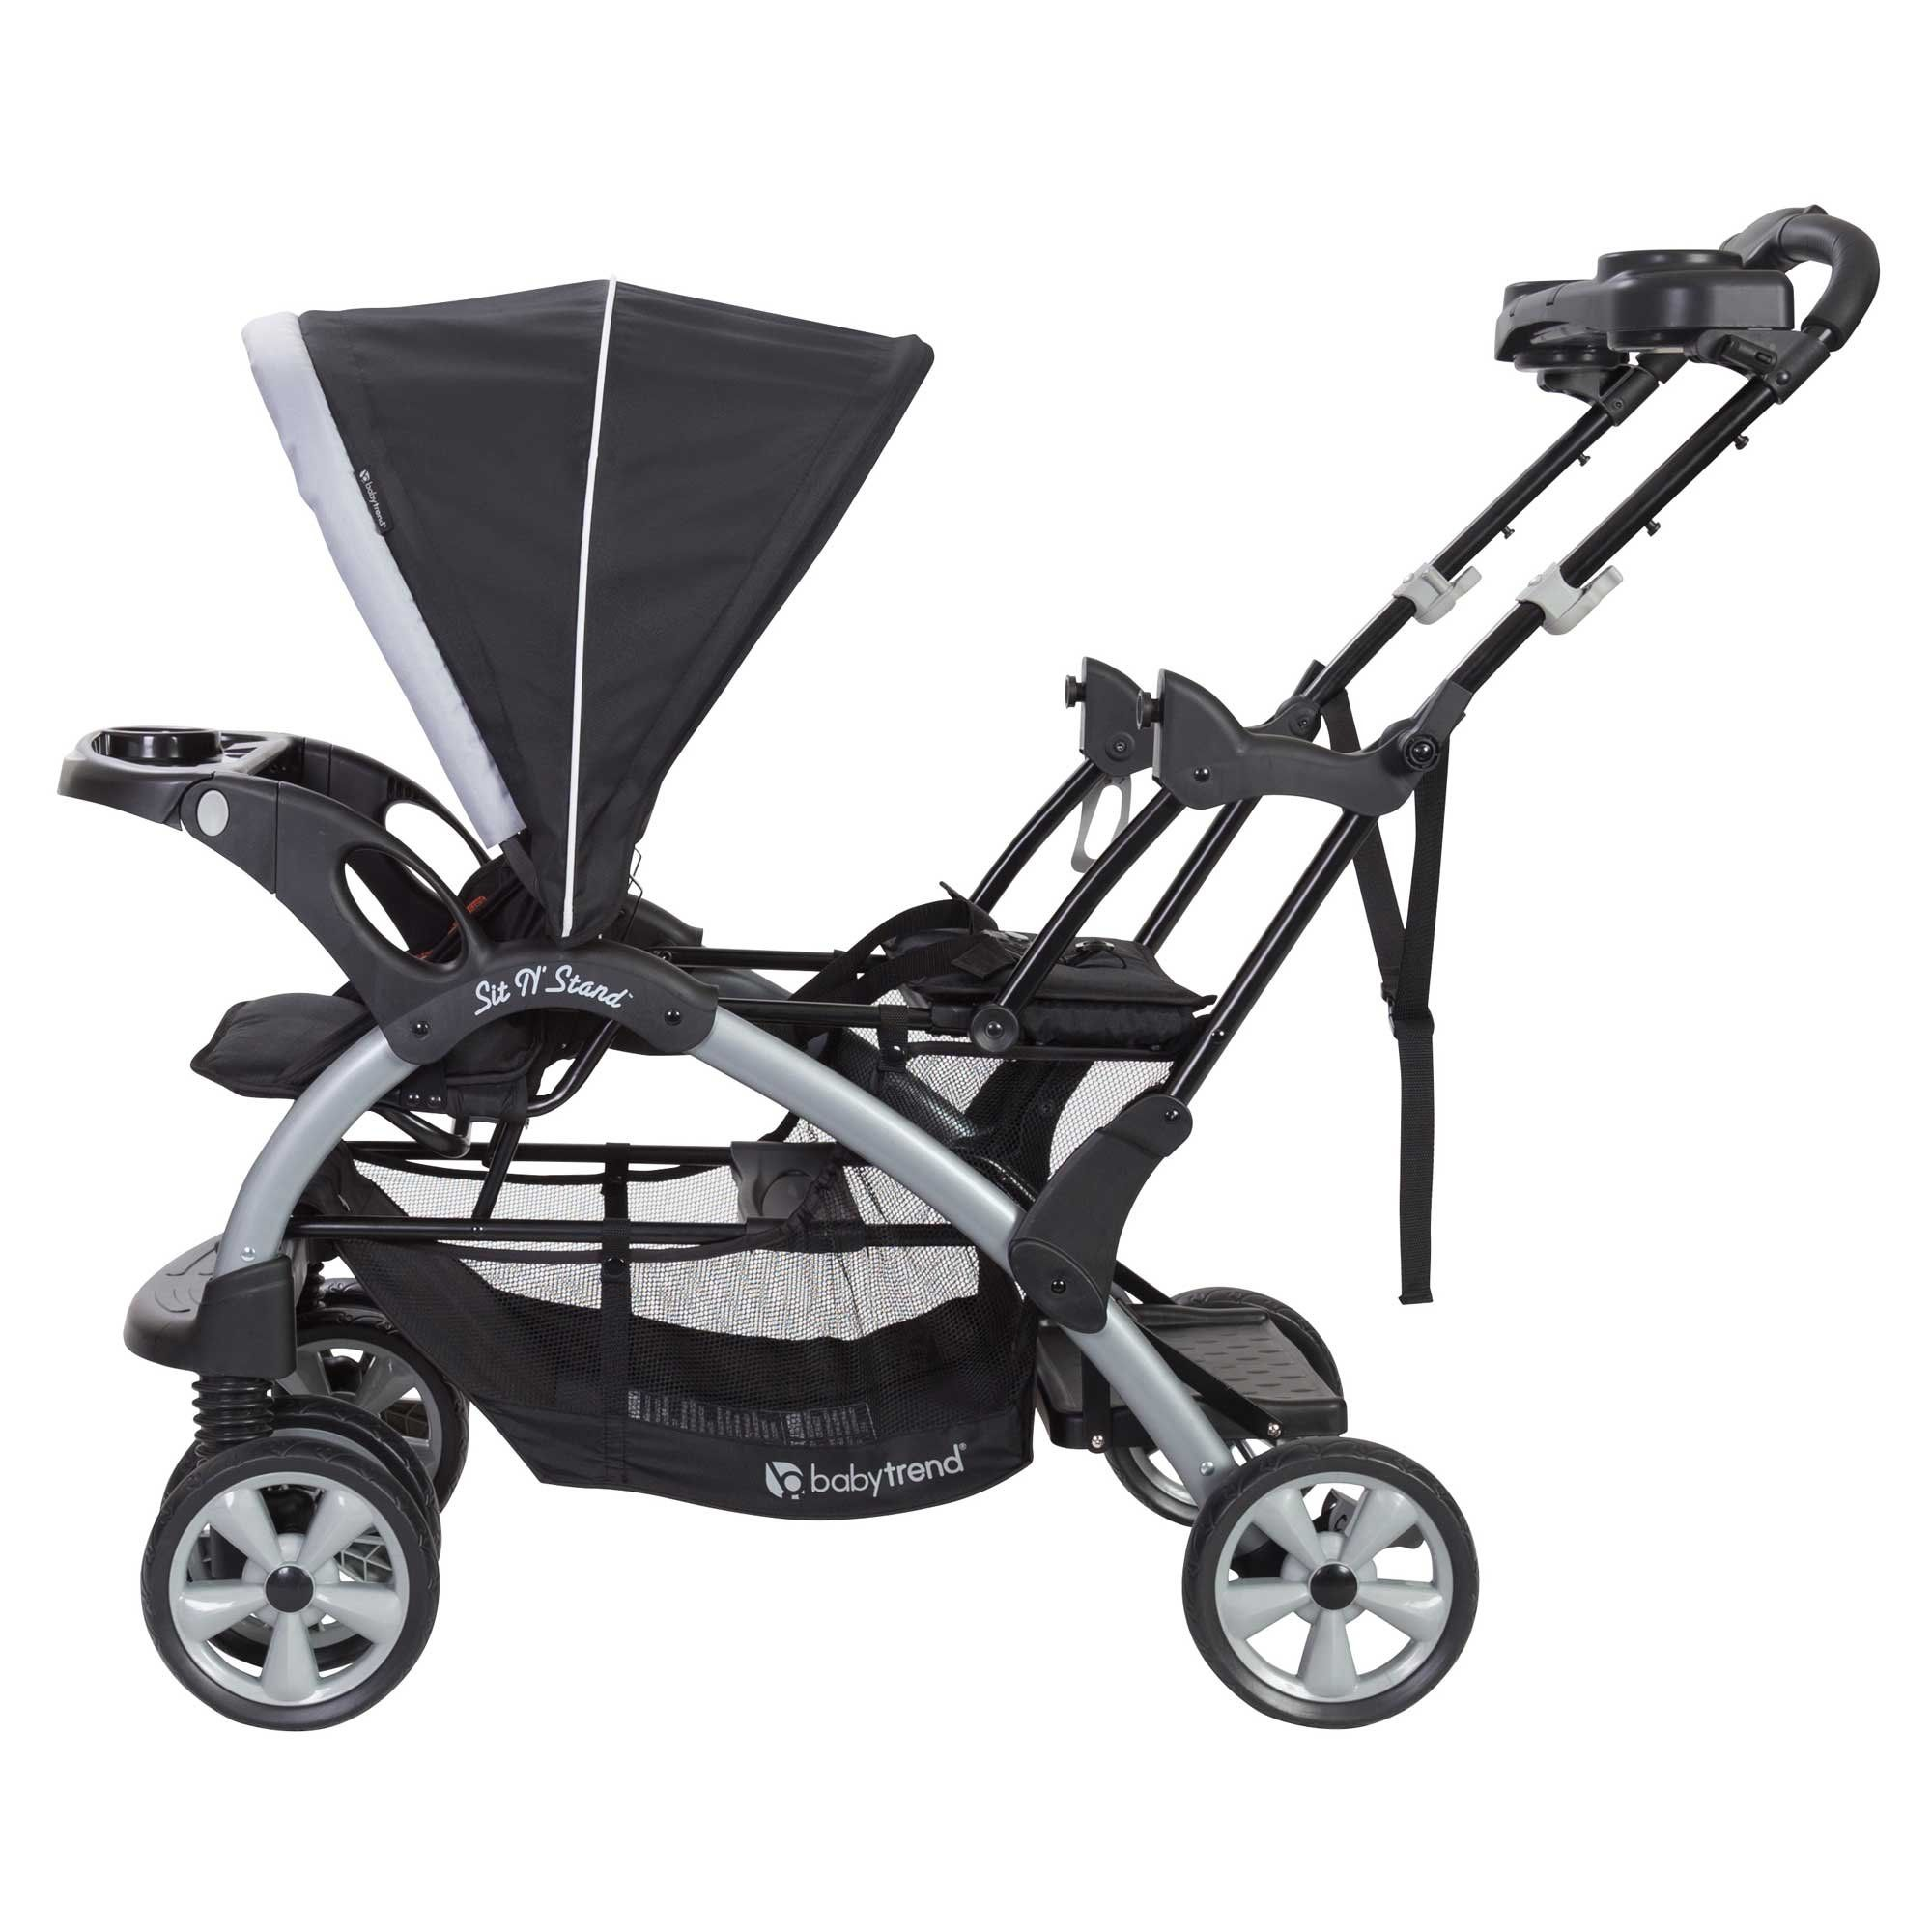 Pin on Strollers and Accessories